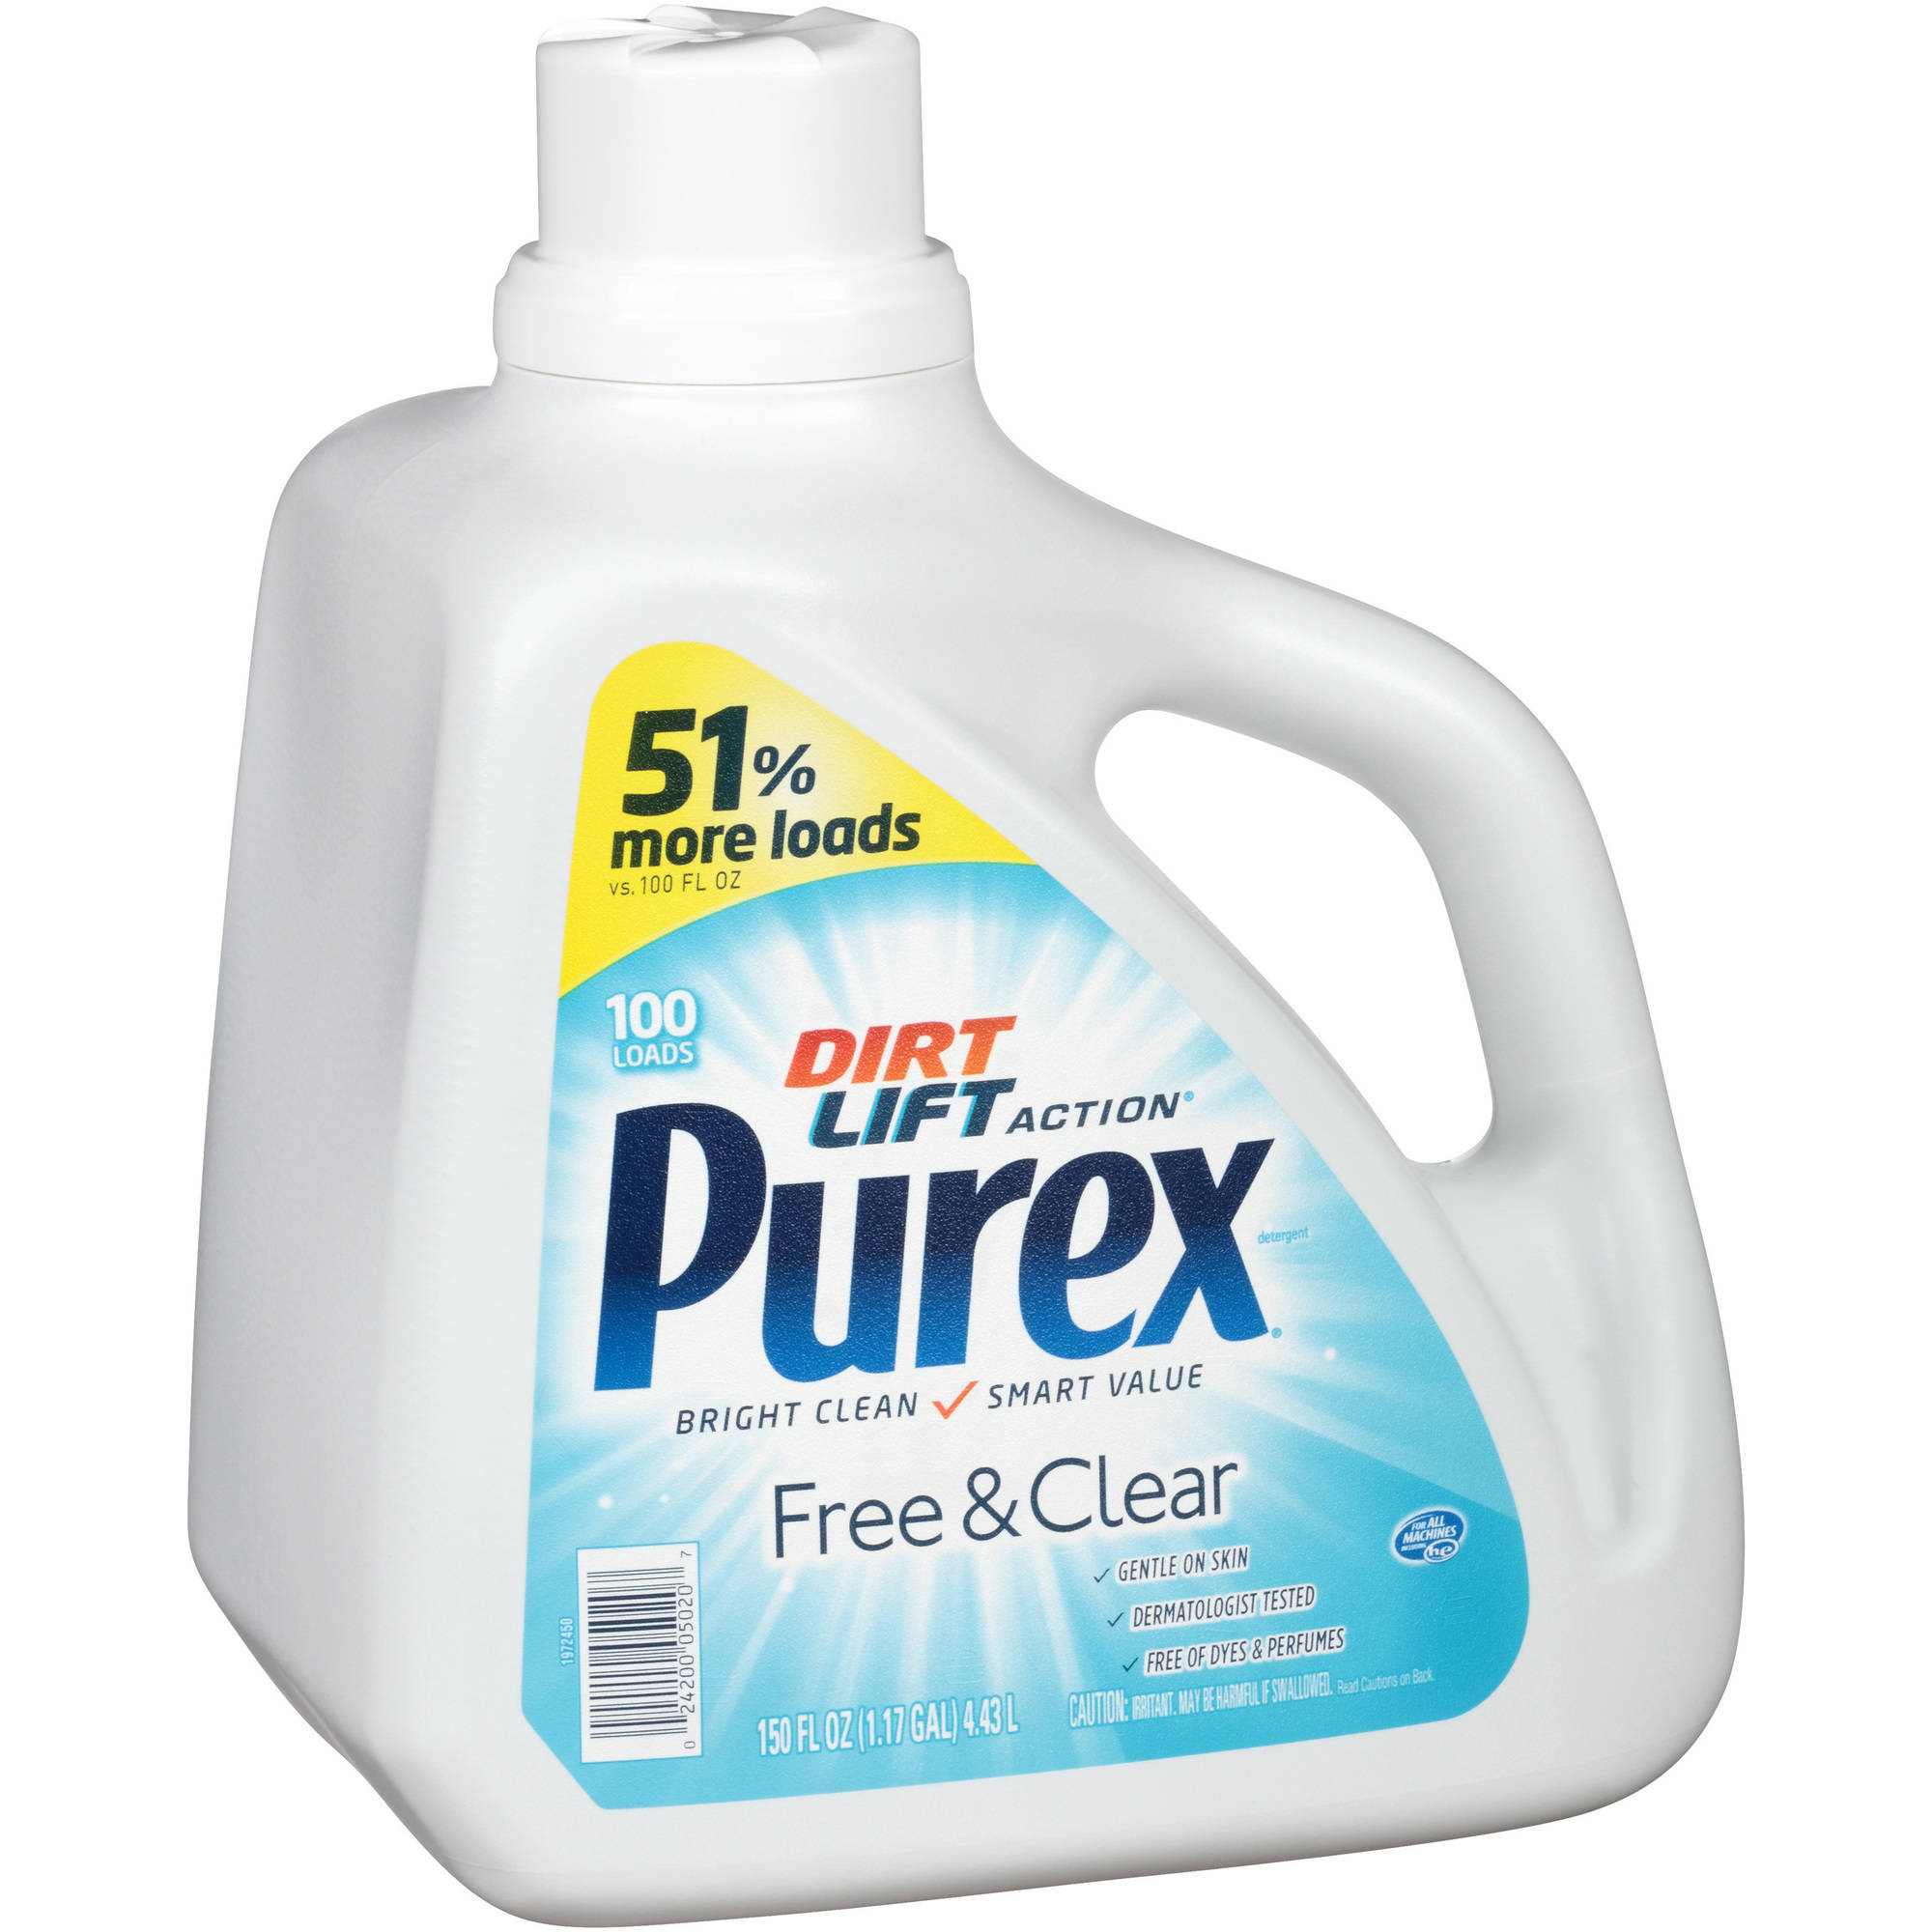 Purex Free & Clear Liquid Laundry Detergent, 100 loads, 150 fl oz